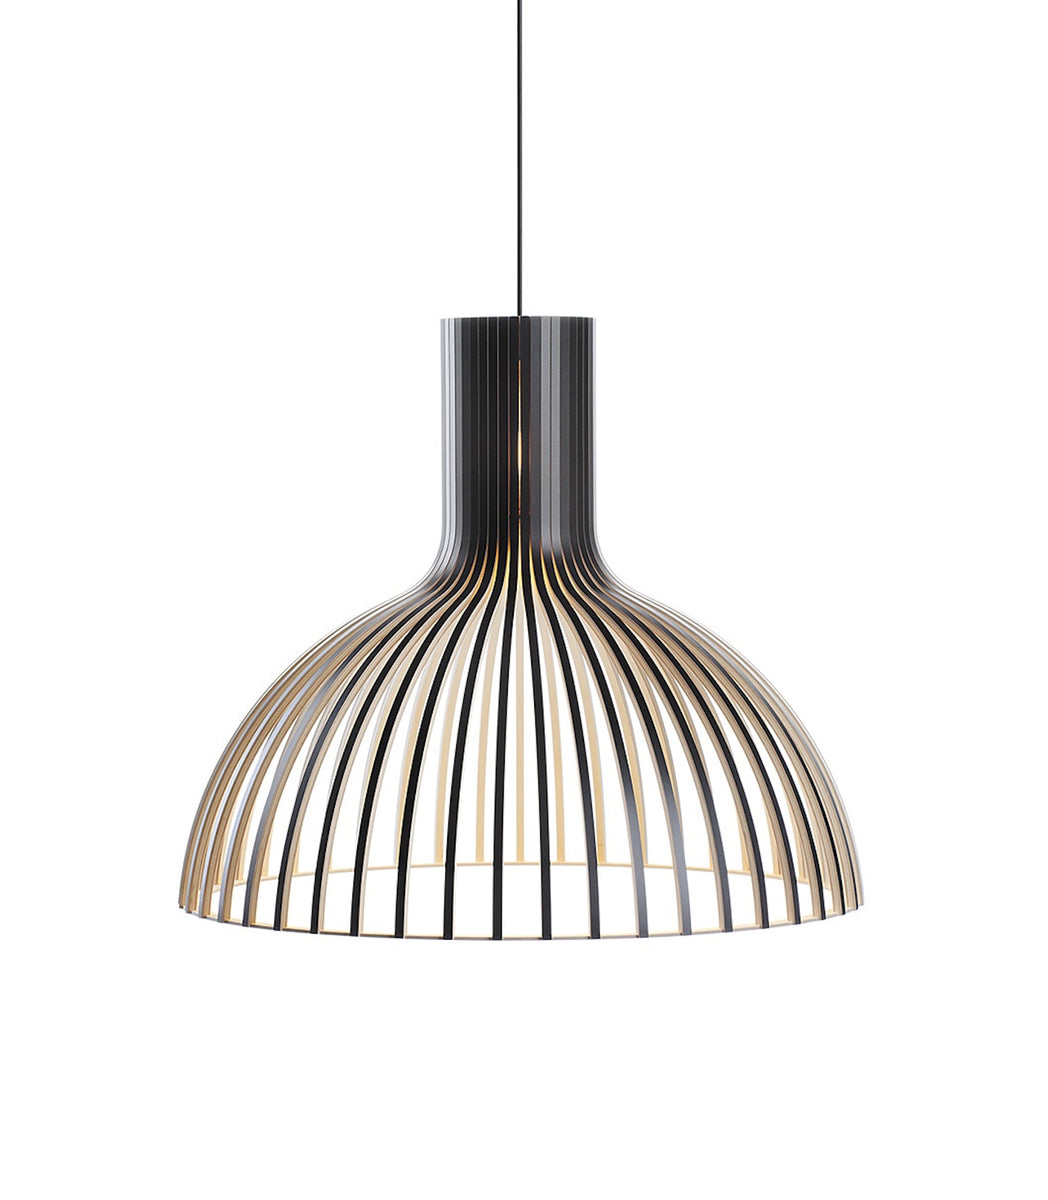 Victo 4250  Black, White, Birch Secto Design handmade contemporary lighting sustainable